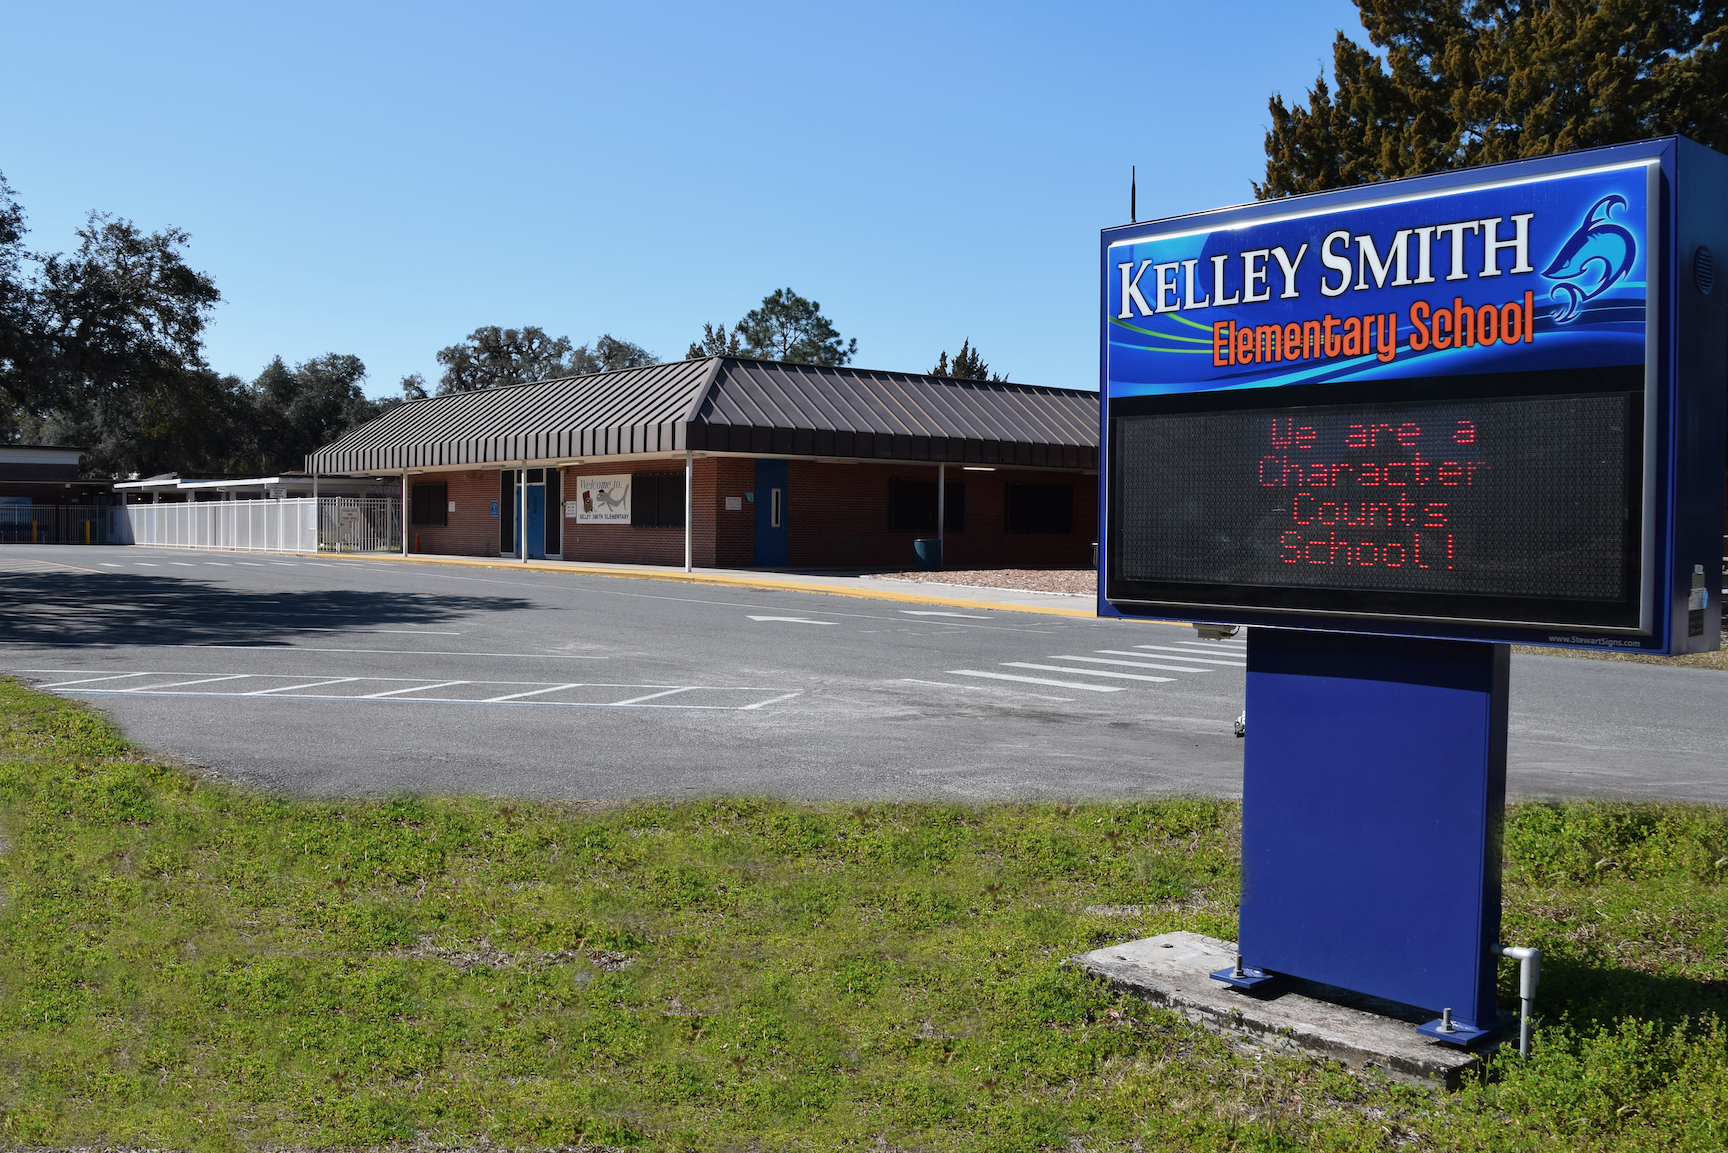 Kelley Smith Elementary School